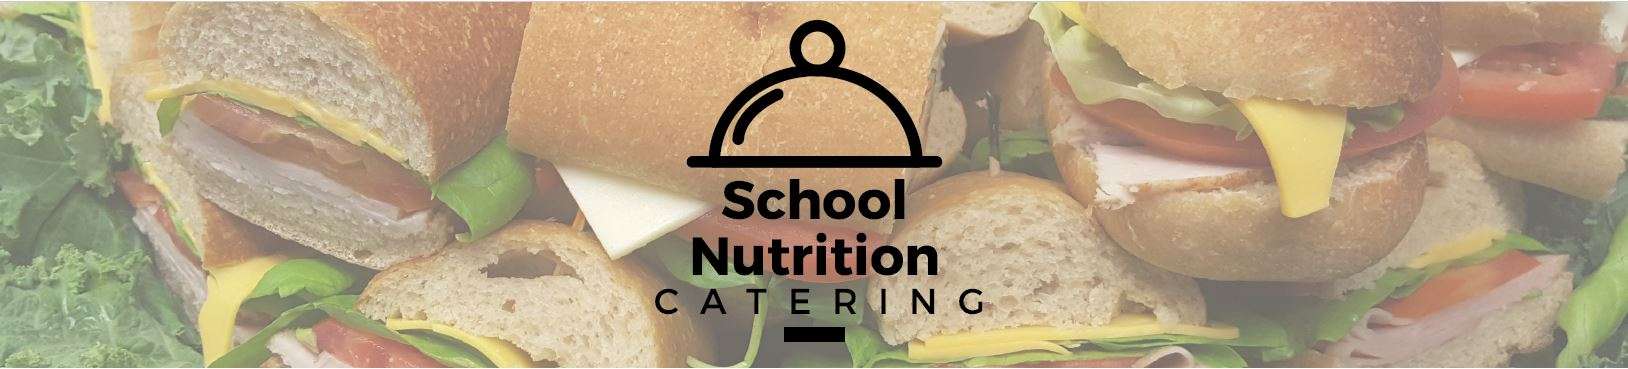 School Nutrition Catering